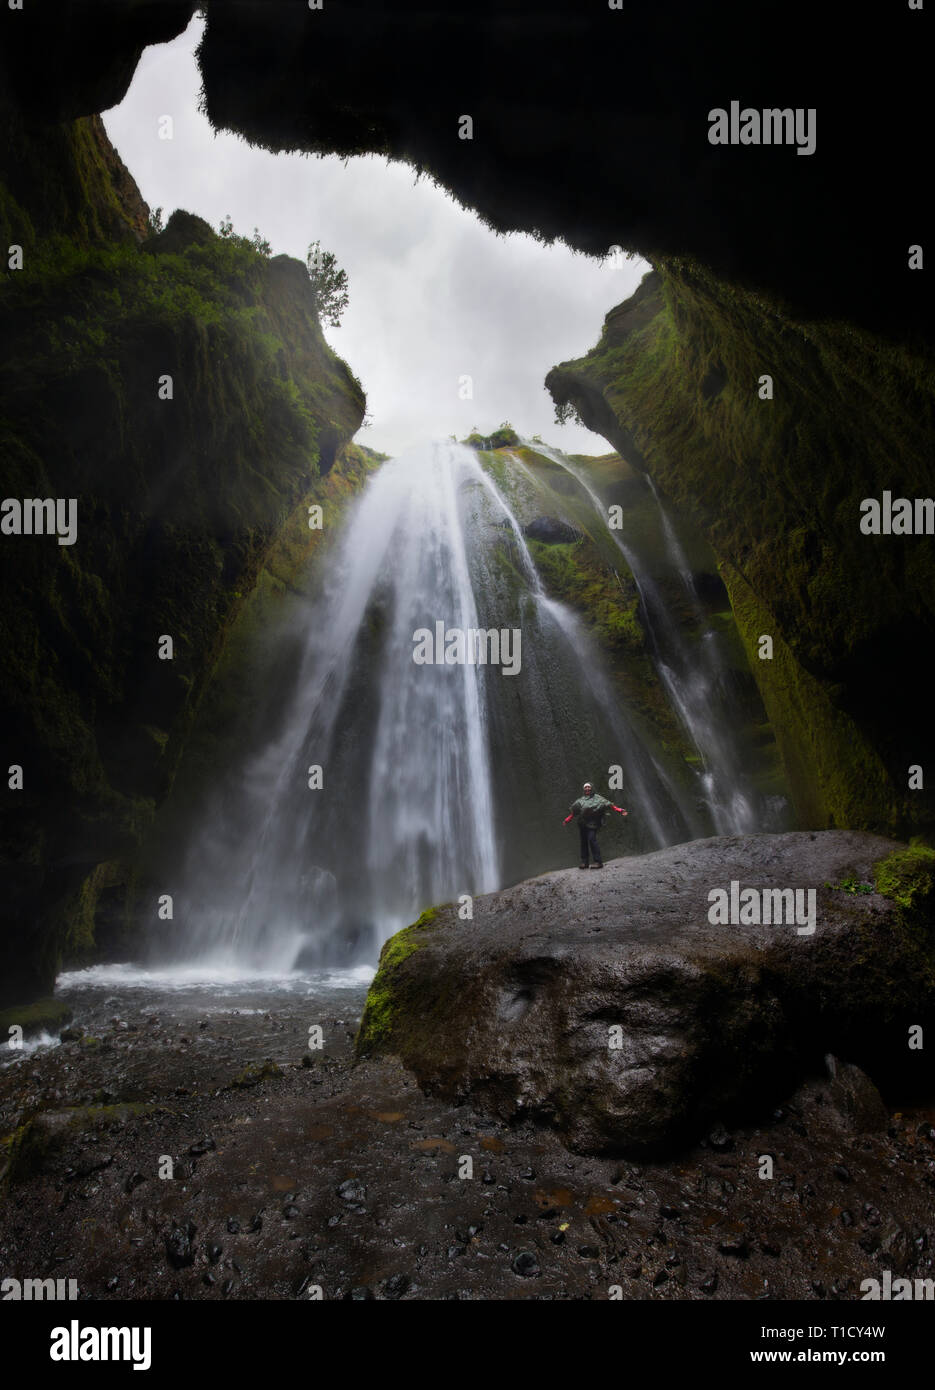 travel to Iceland, person with raised hands standing in waterfall Gljufrabui, inspired happy traveler enjoying nature, adventure concept - Stock Image